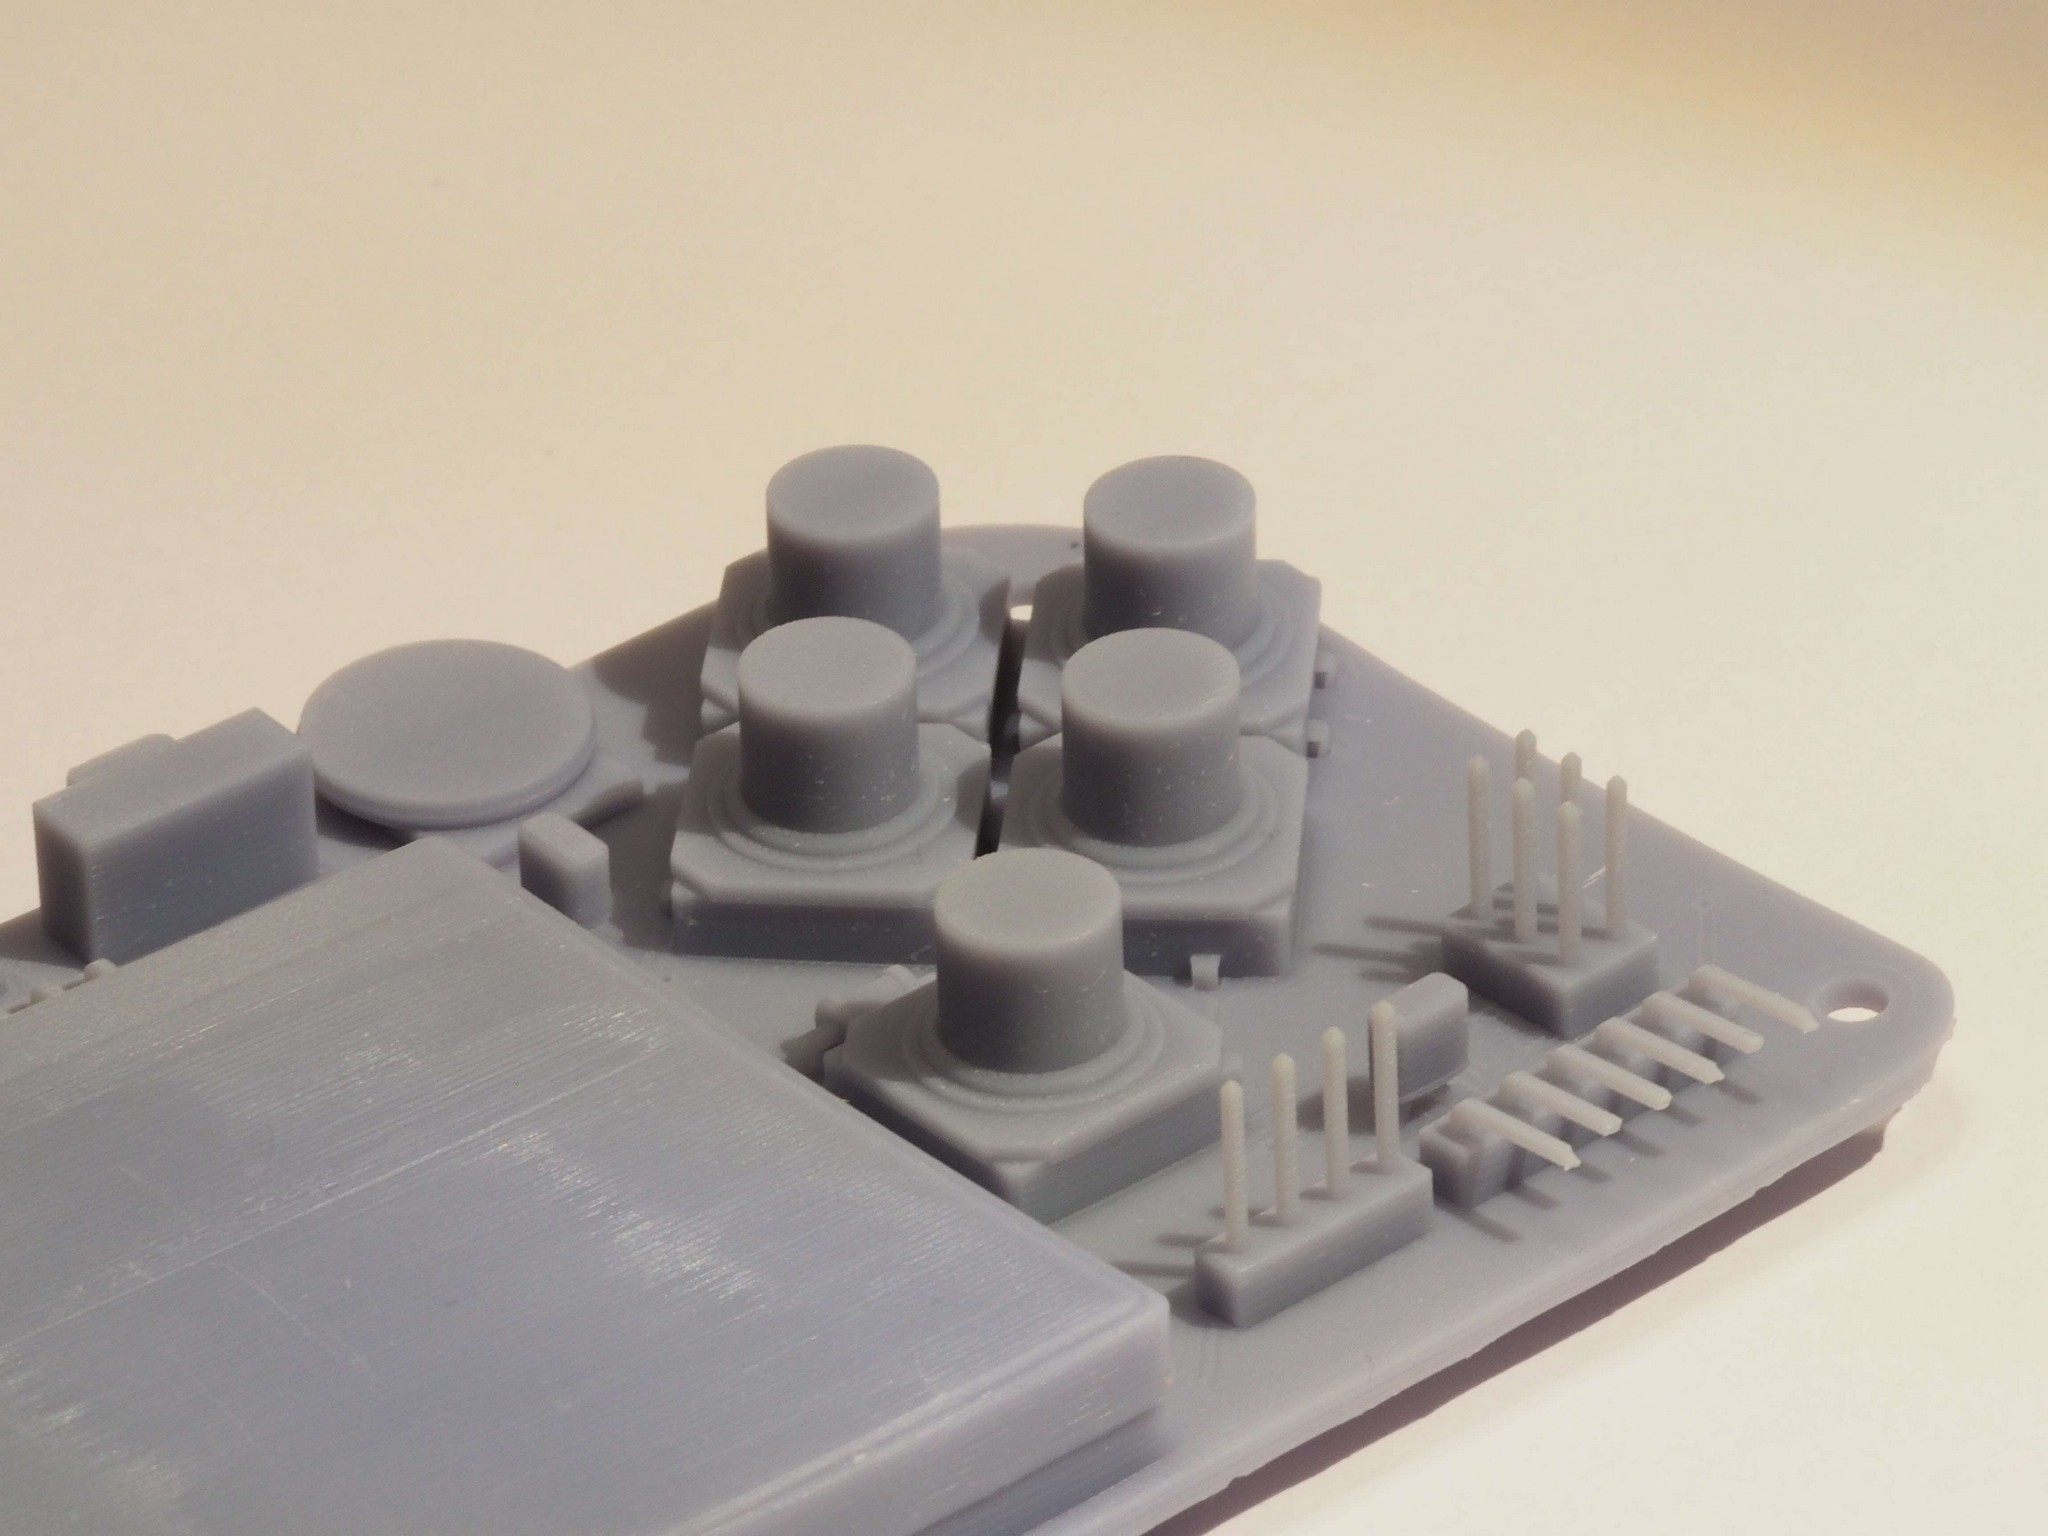 SLA 3D Print of Gamebuino STEP Model